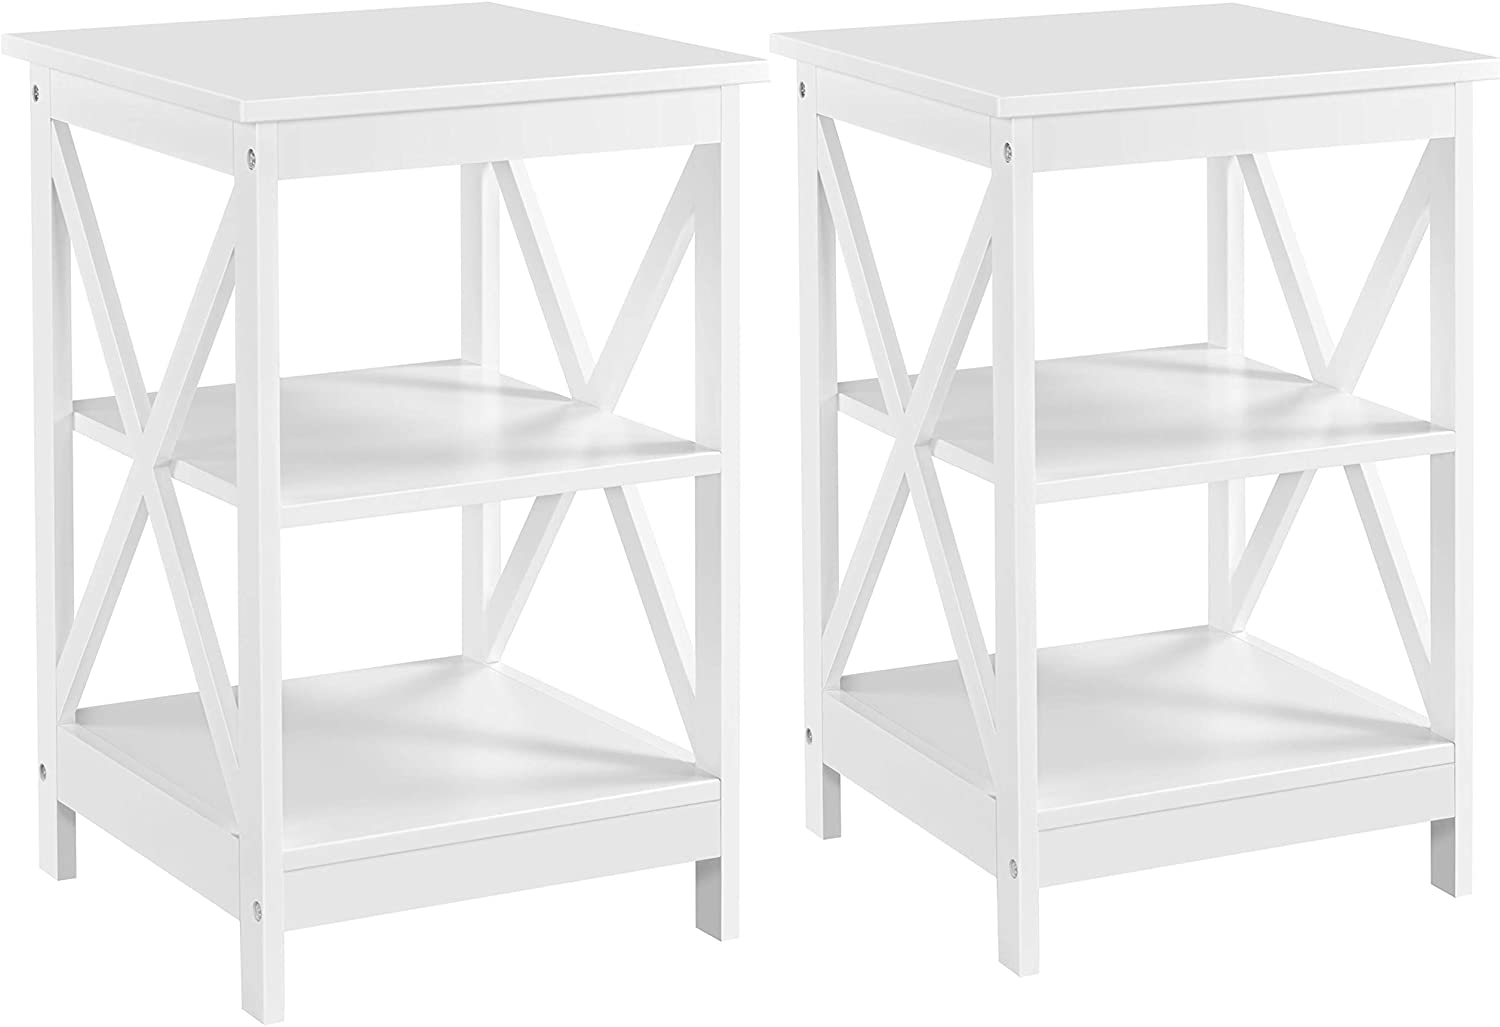 YAHEETECH 3-Tier End Table, X-Design Wooden Sofa Side End Table Storage Cabinet, Living Room Bedroom Furniture, Set of 2, White